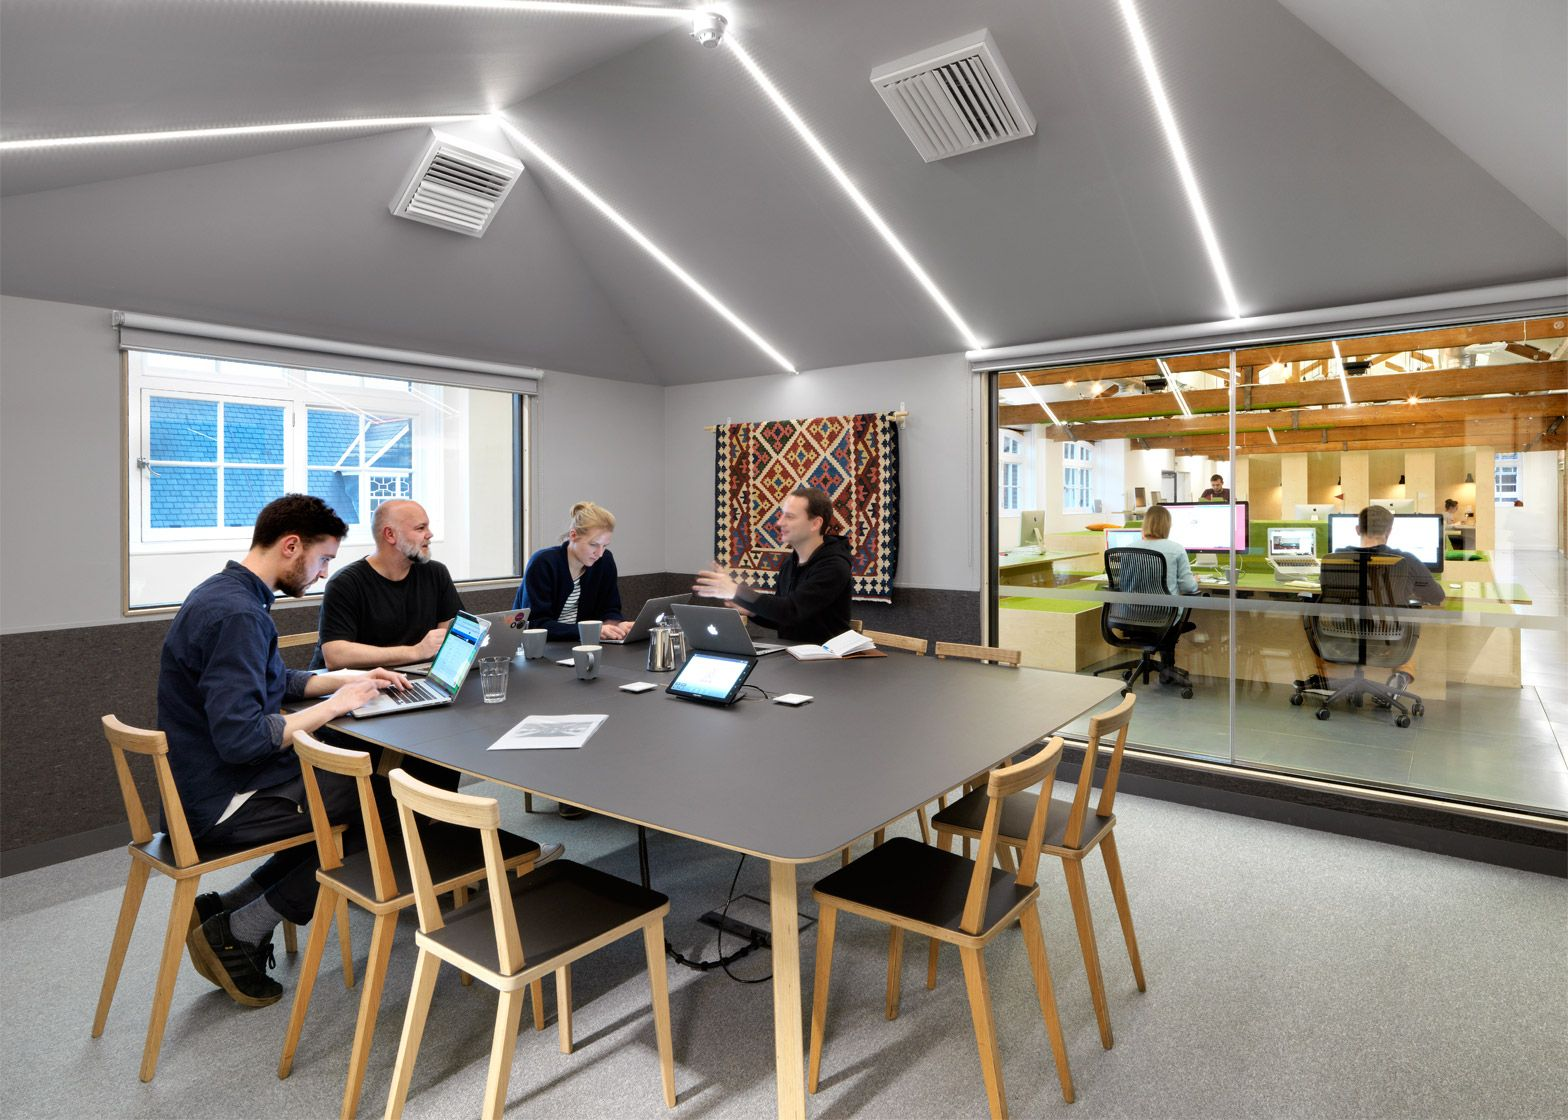 airbnb office singapore. Airbnb Designs Adaptable Office Spaces For London, Sao Paulo And Singapore S